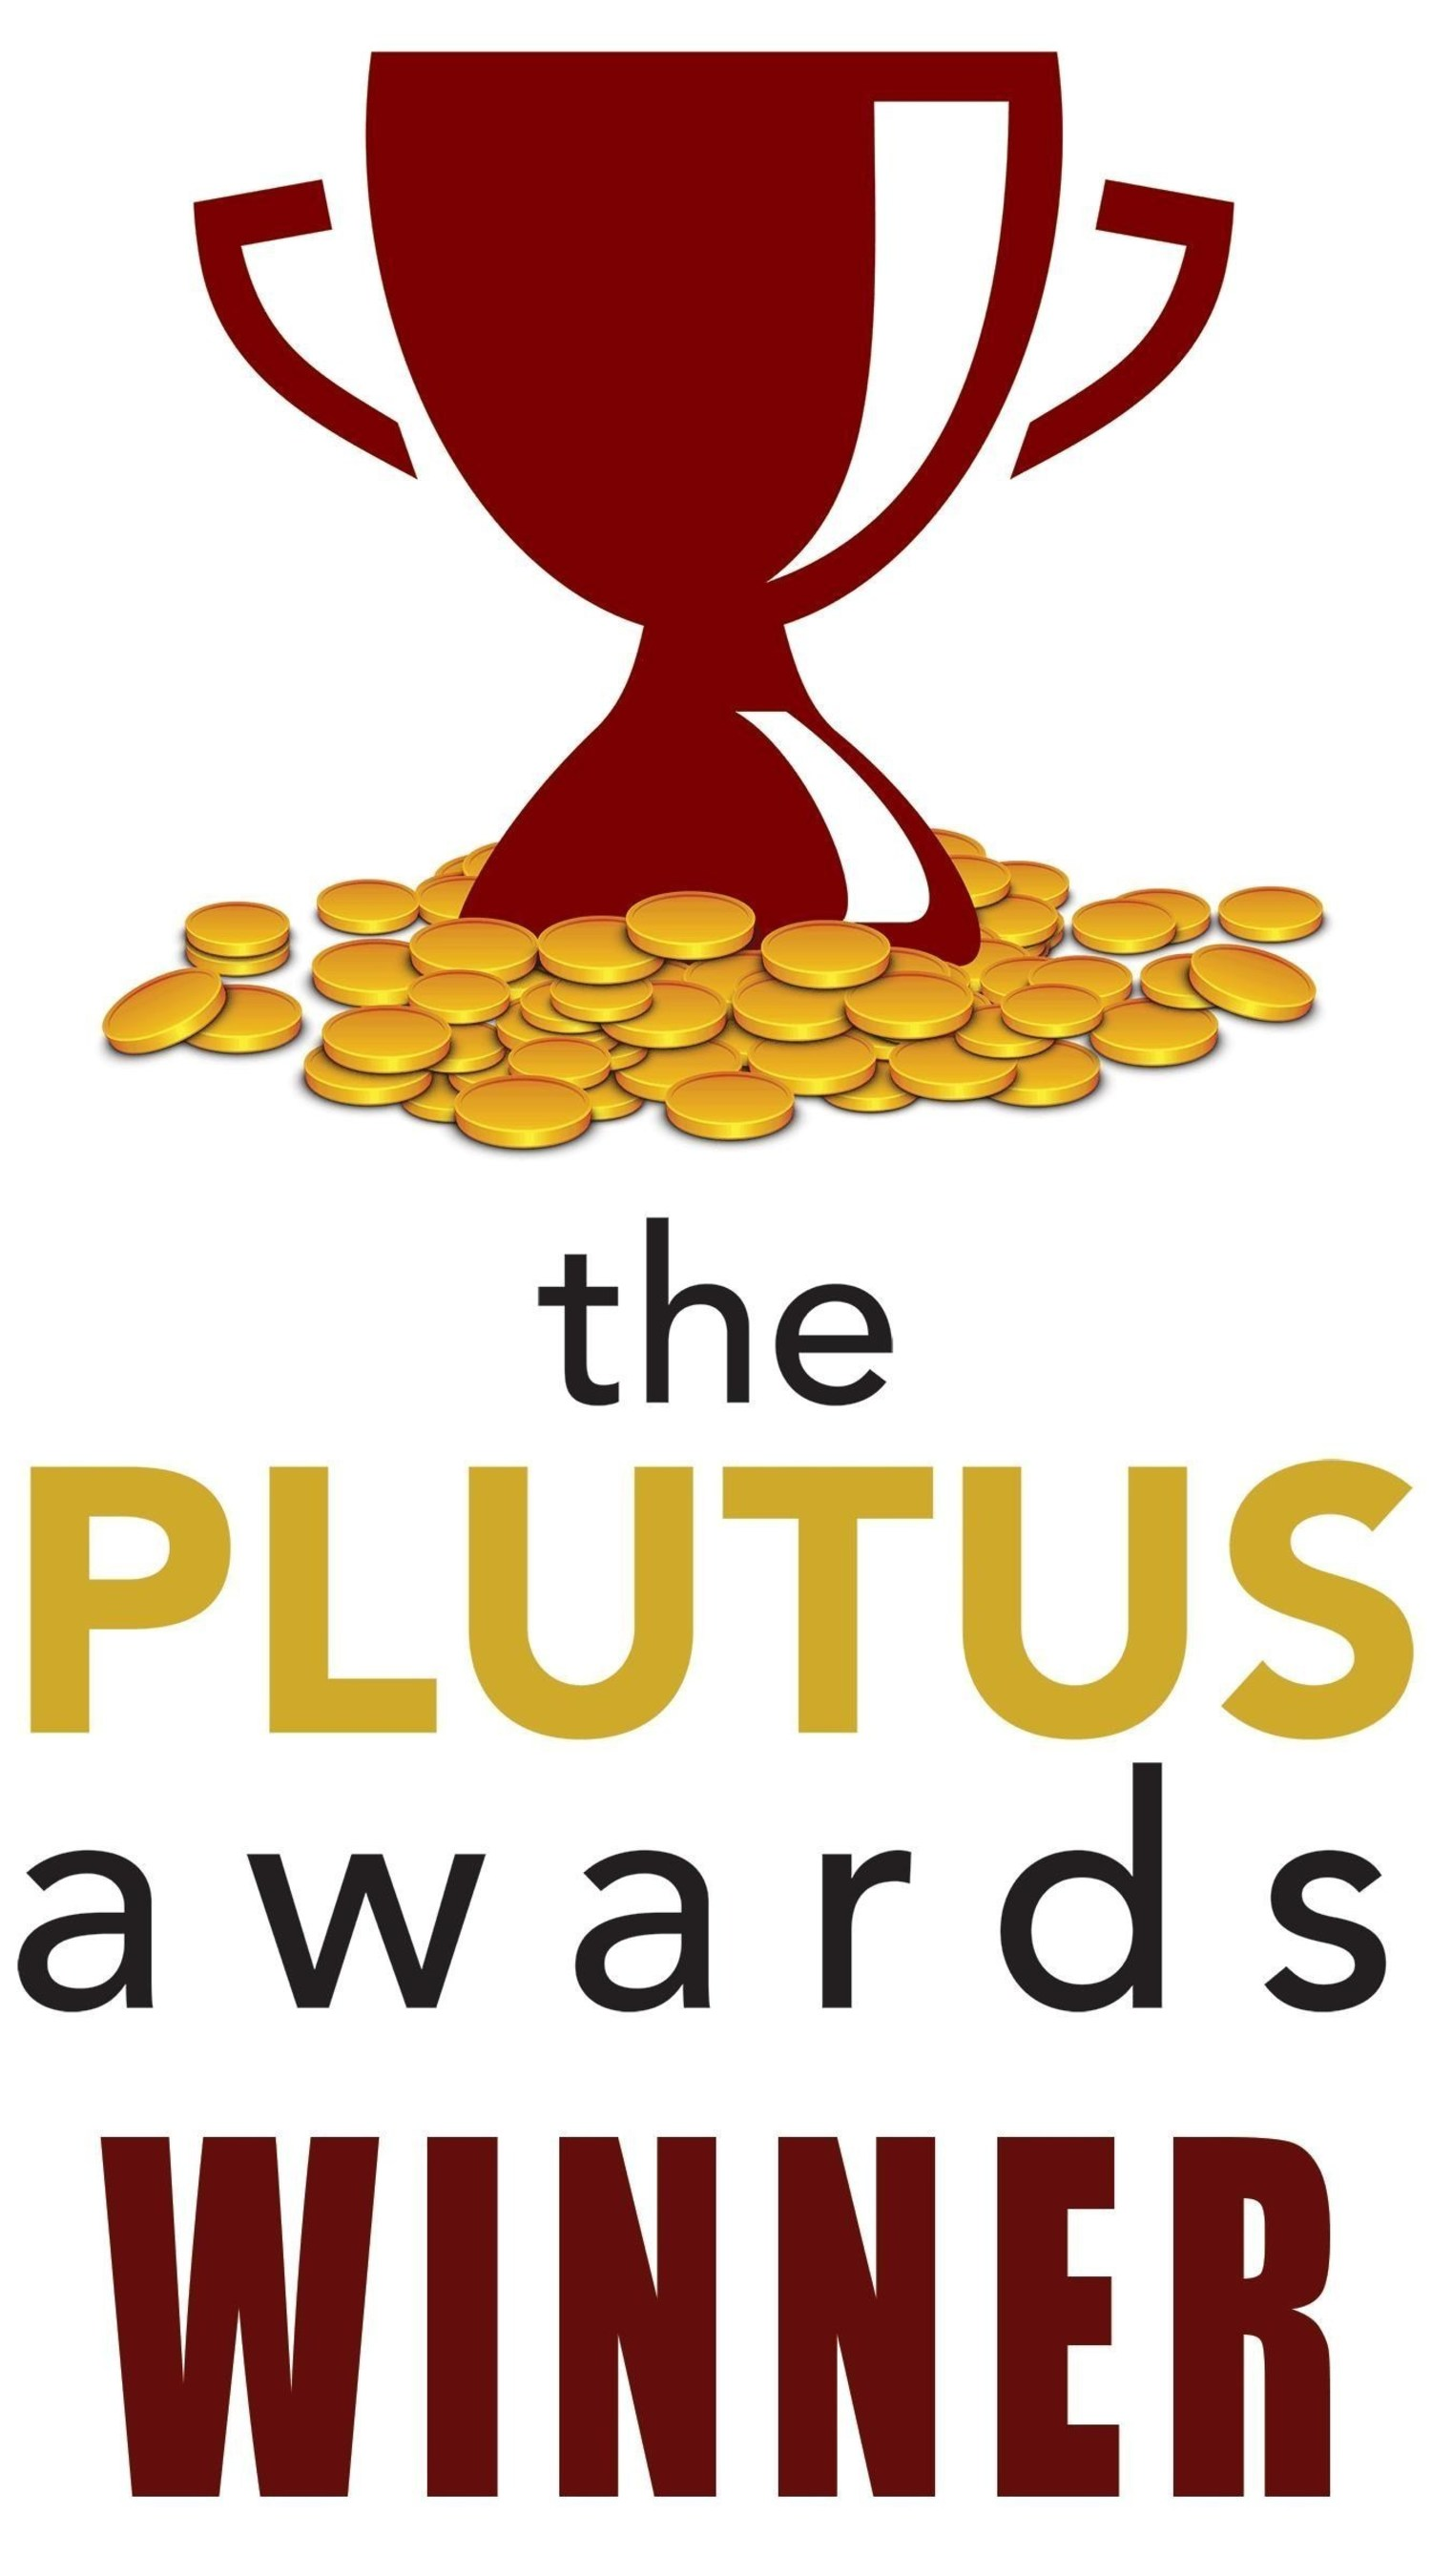 Experian wins back-to-back Plutus Awards for Best Use of Social Media by a Brand